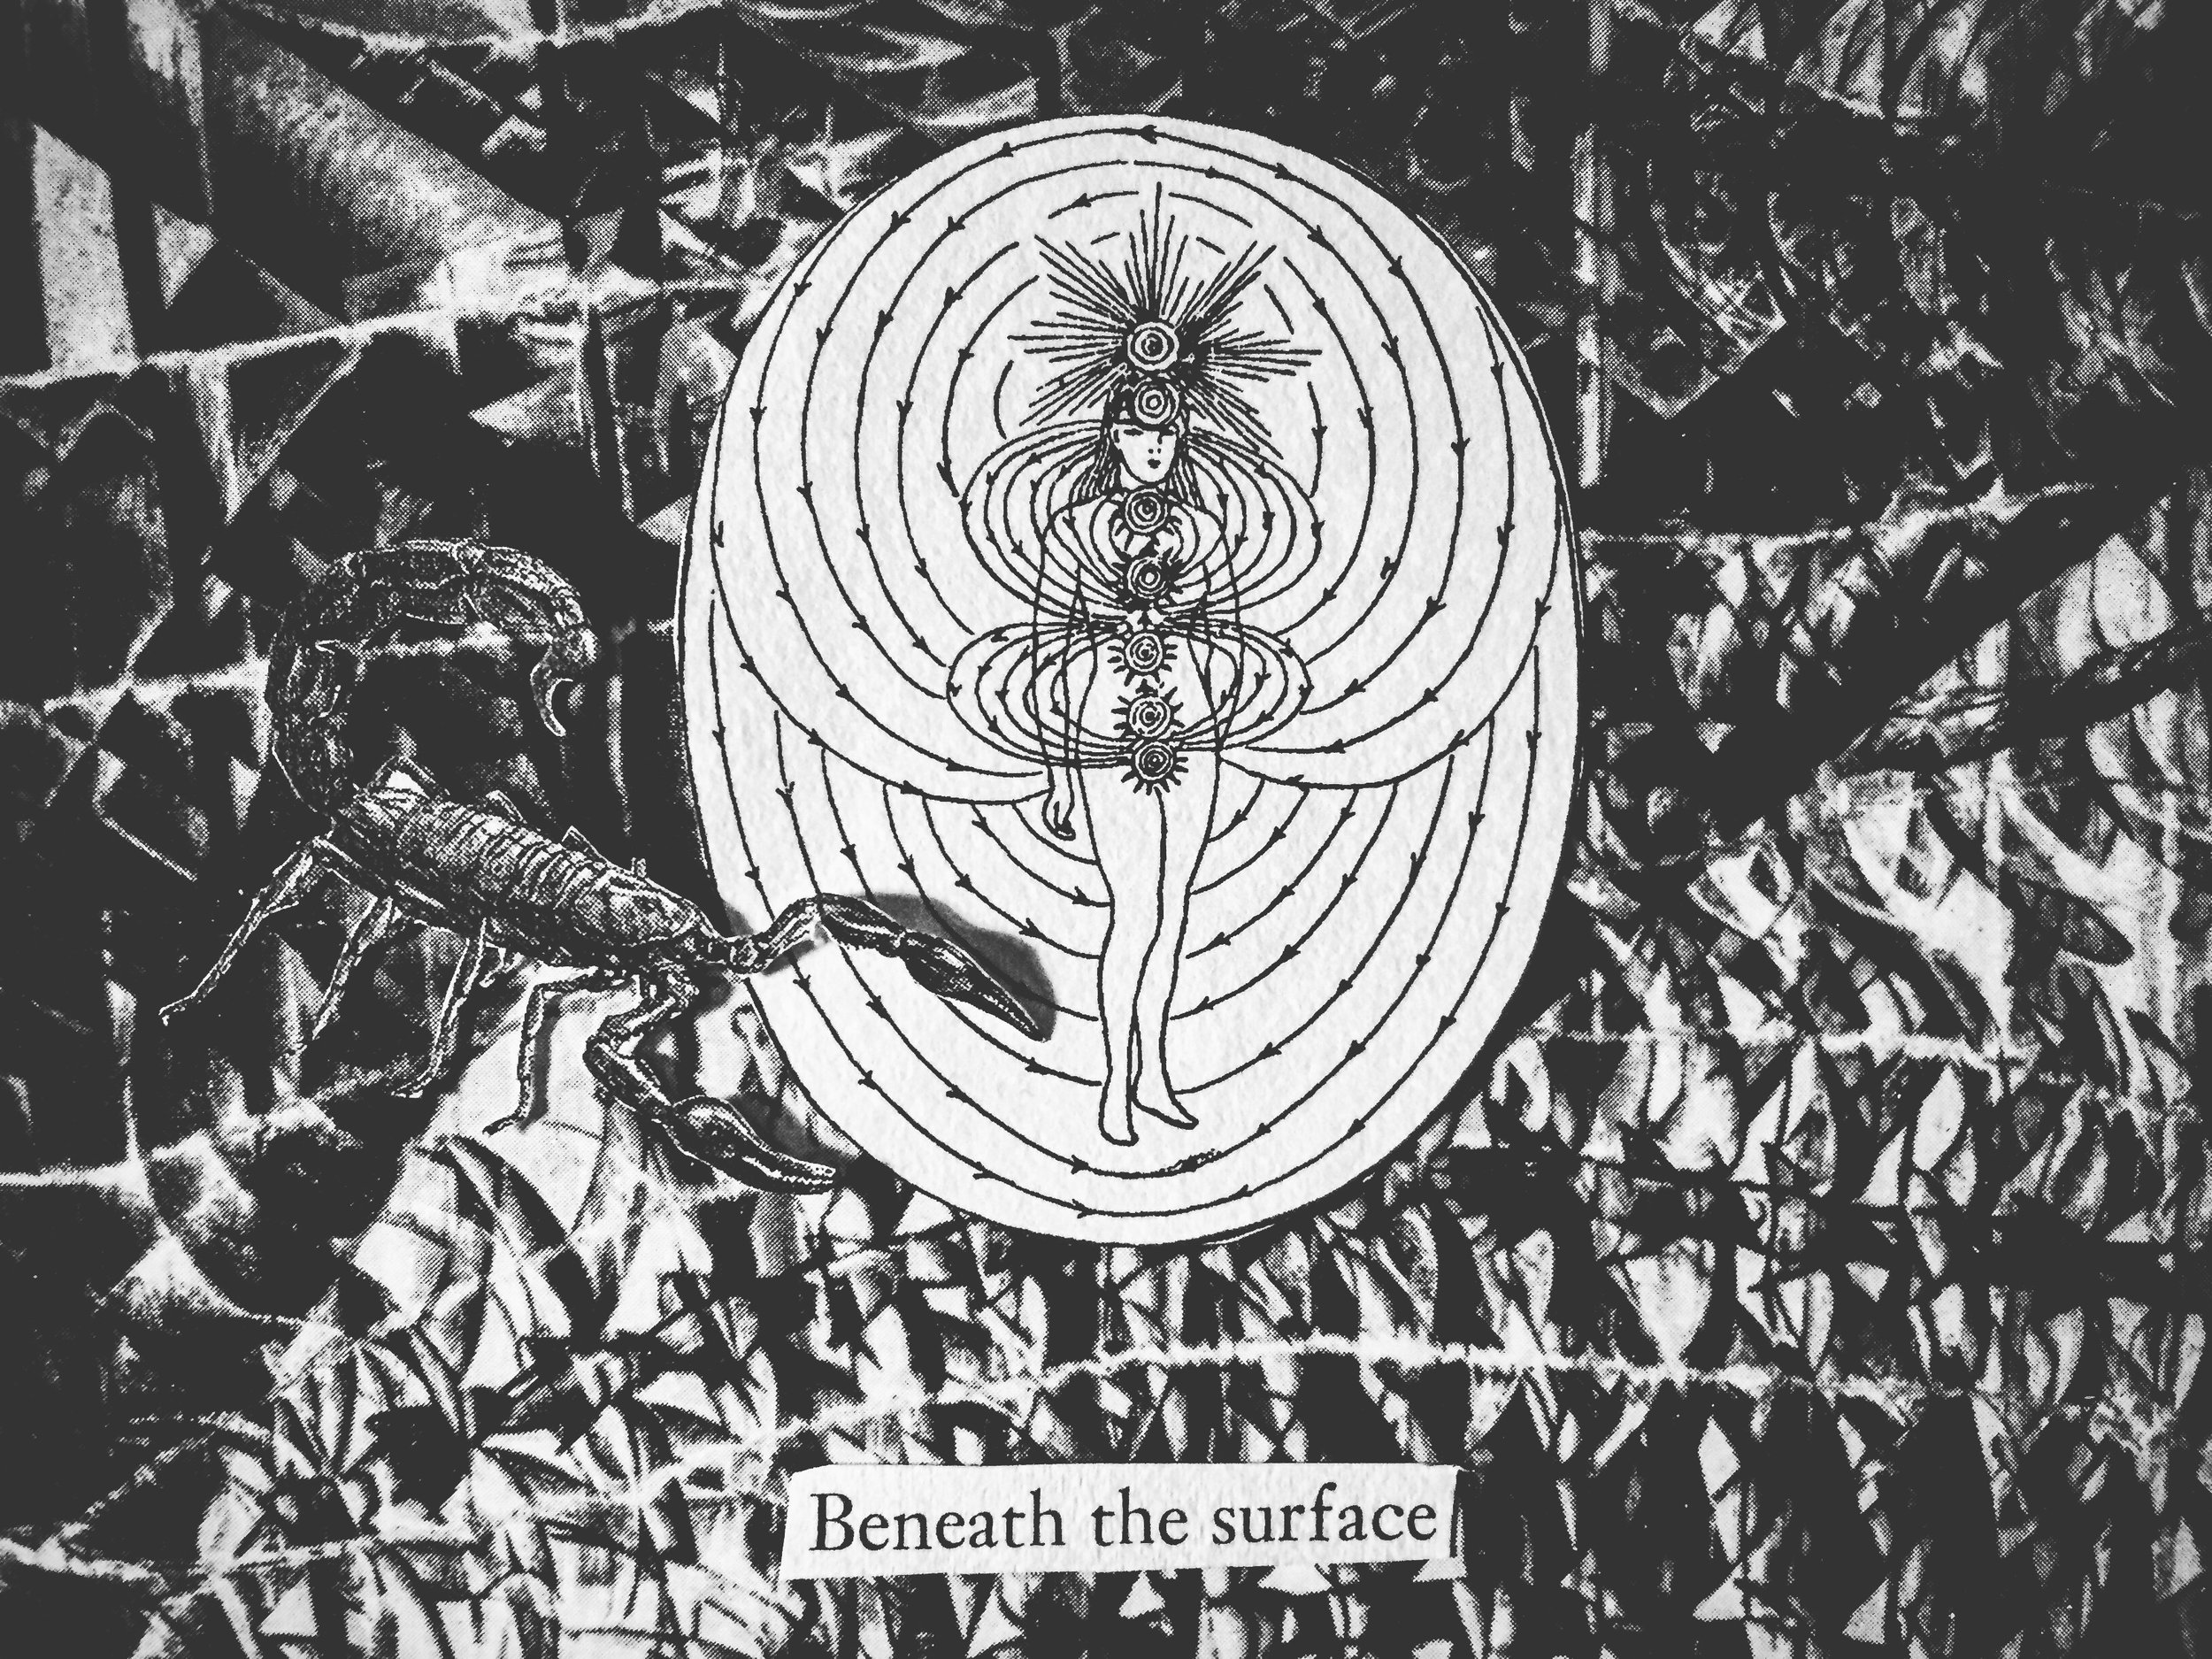 Beneath the Surface by Joan Pope (temple ov saturn)